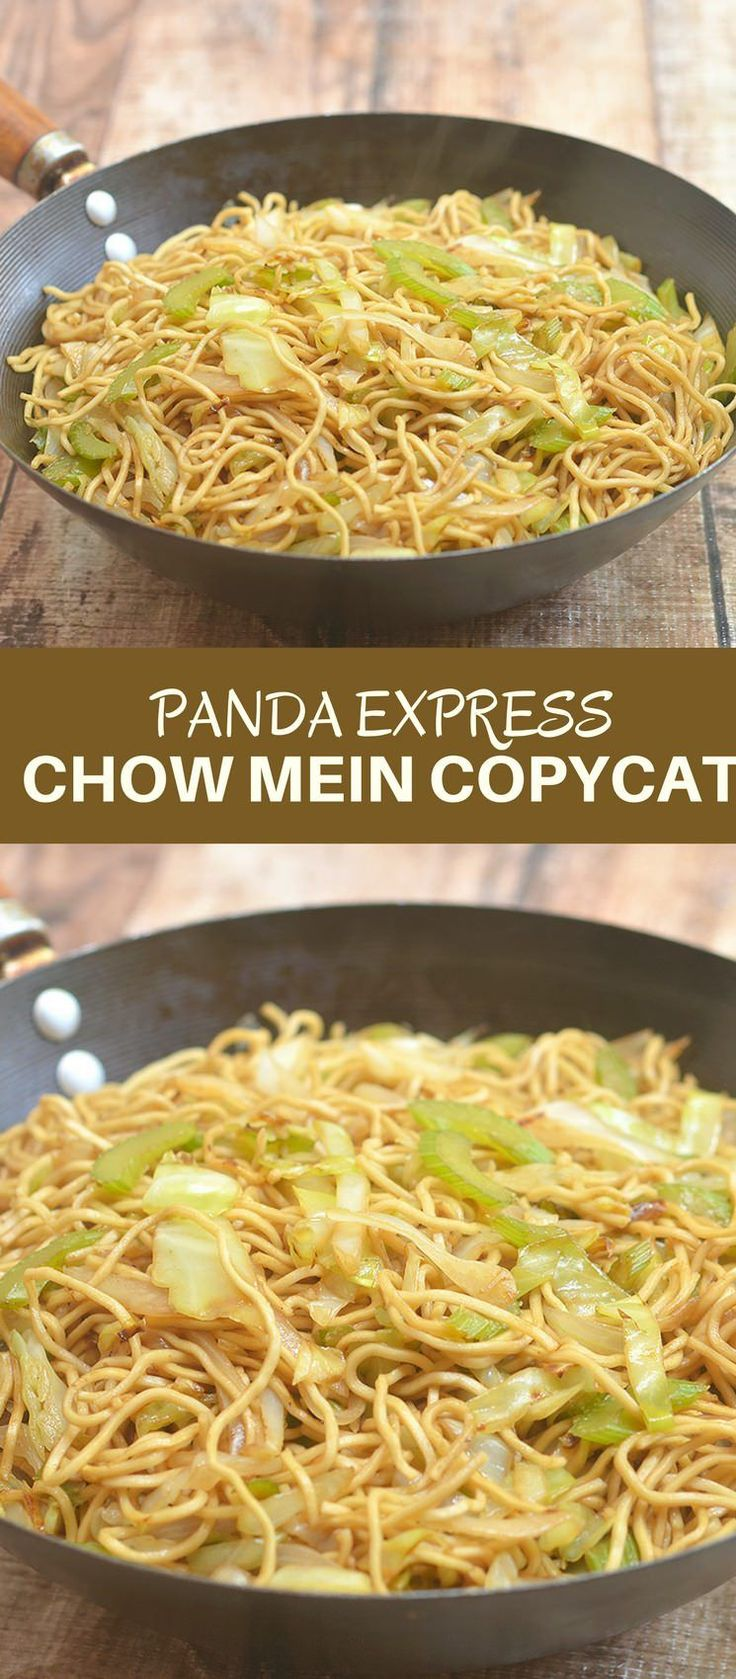 Panda Express Chow Mein Copycat is ready in minutes and tastes just like the restaurant's you would think it's take-out! Recreate your favorite noodle dish cheaper and better at home! #pastafoodrecipes